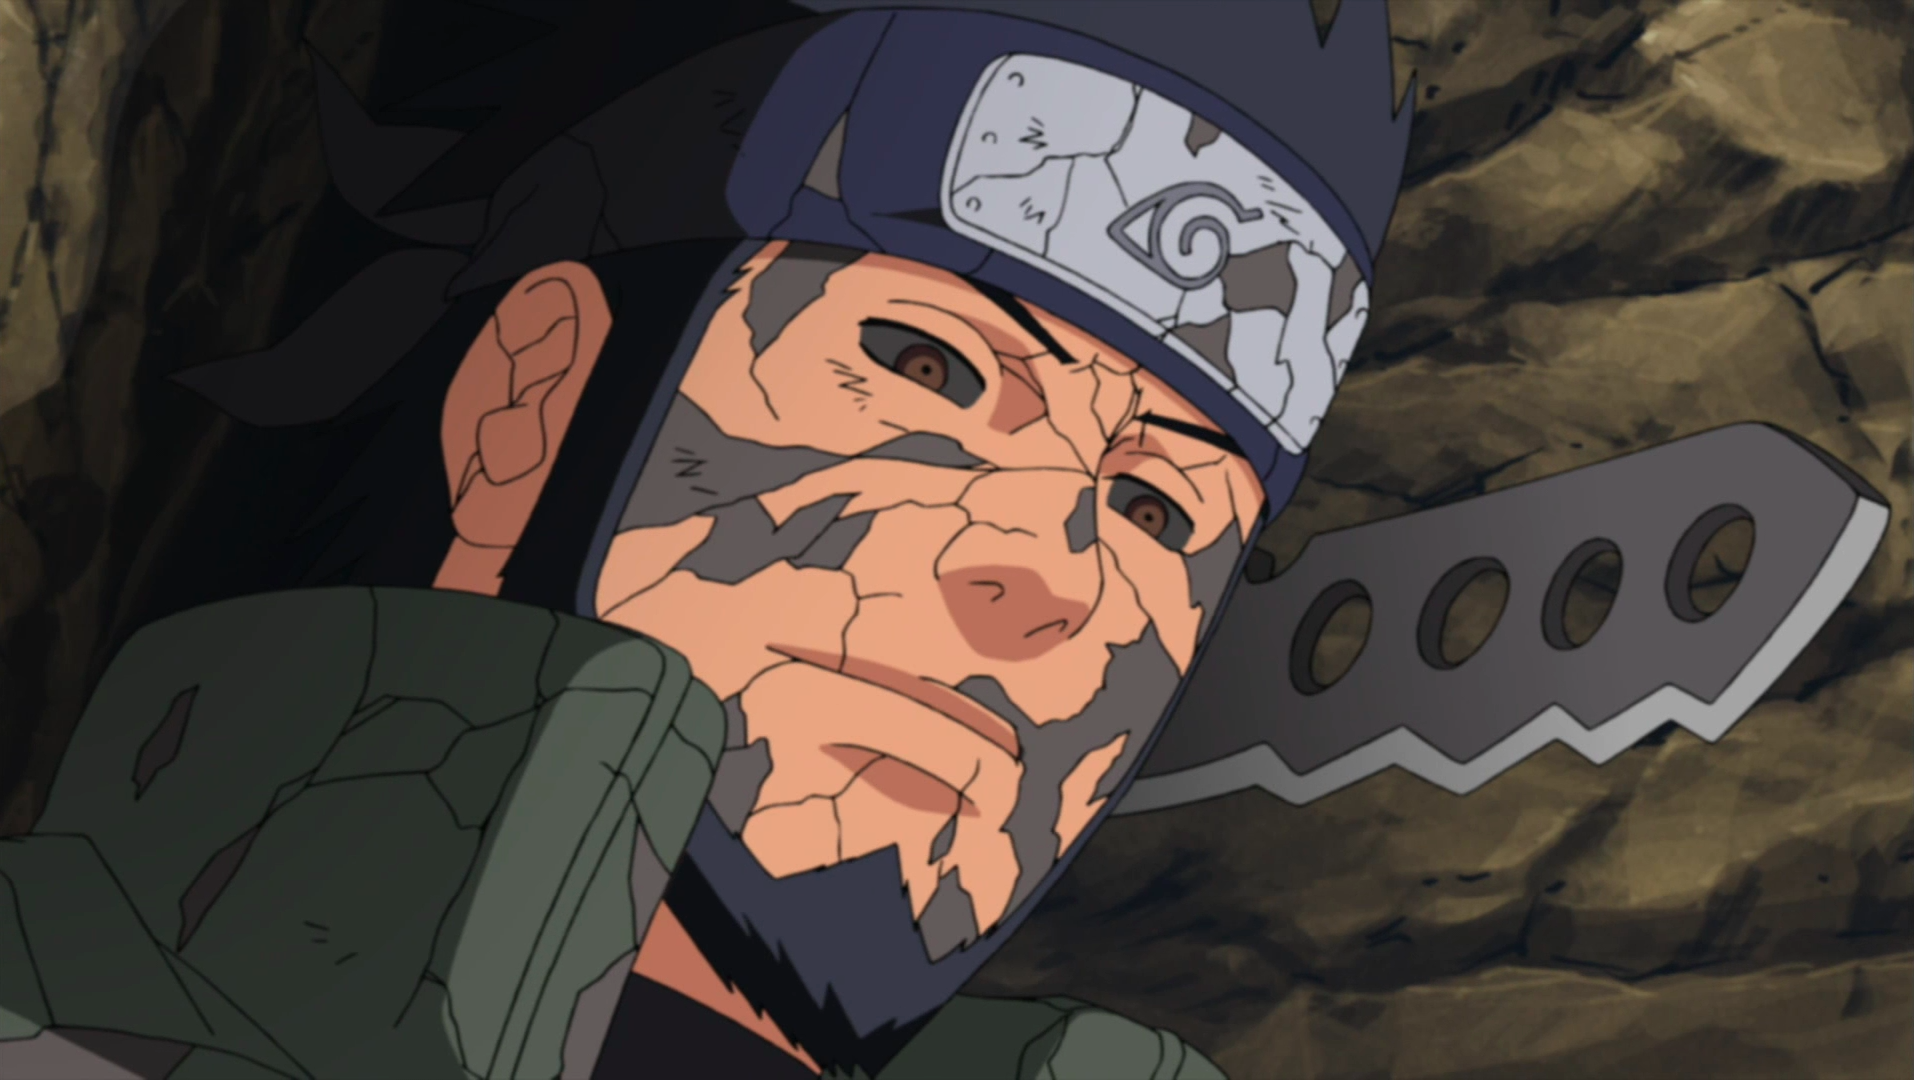 Asuma Sarutobi | Narutopedia | FANDOM powered by Wikia